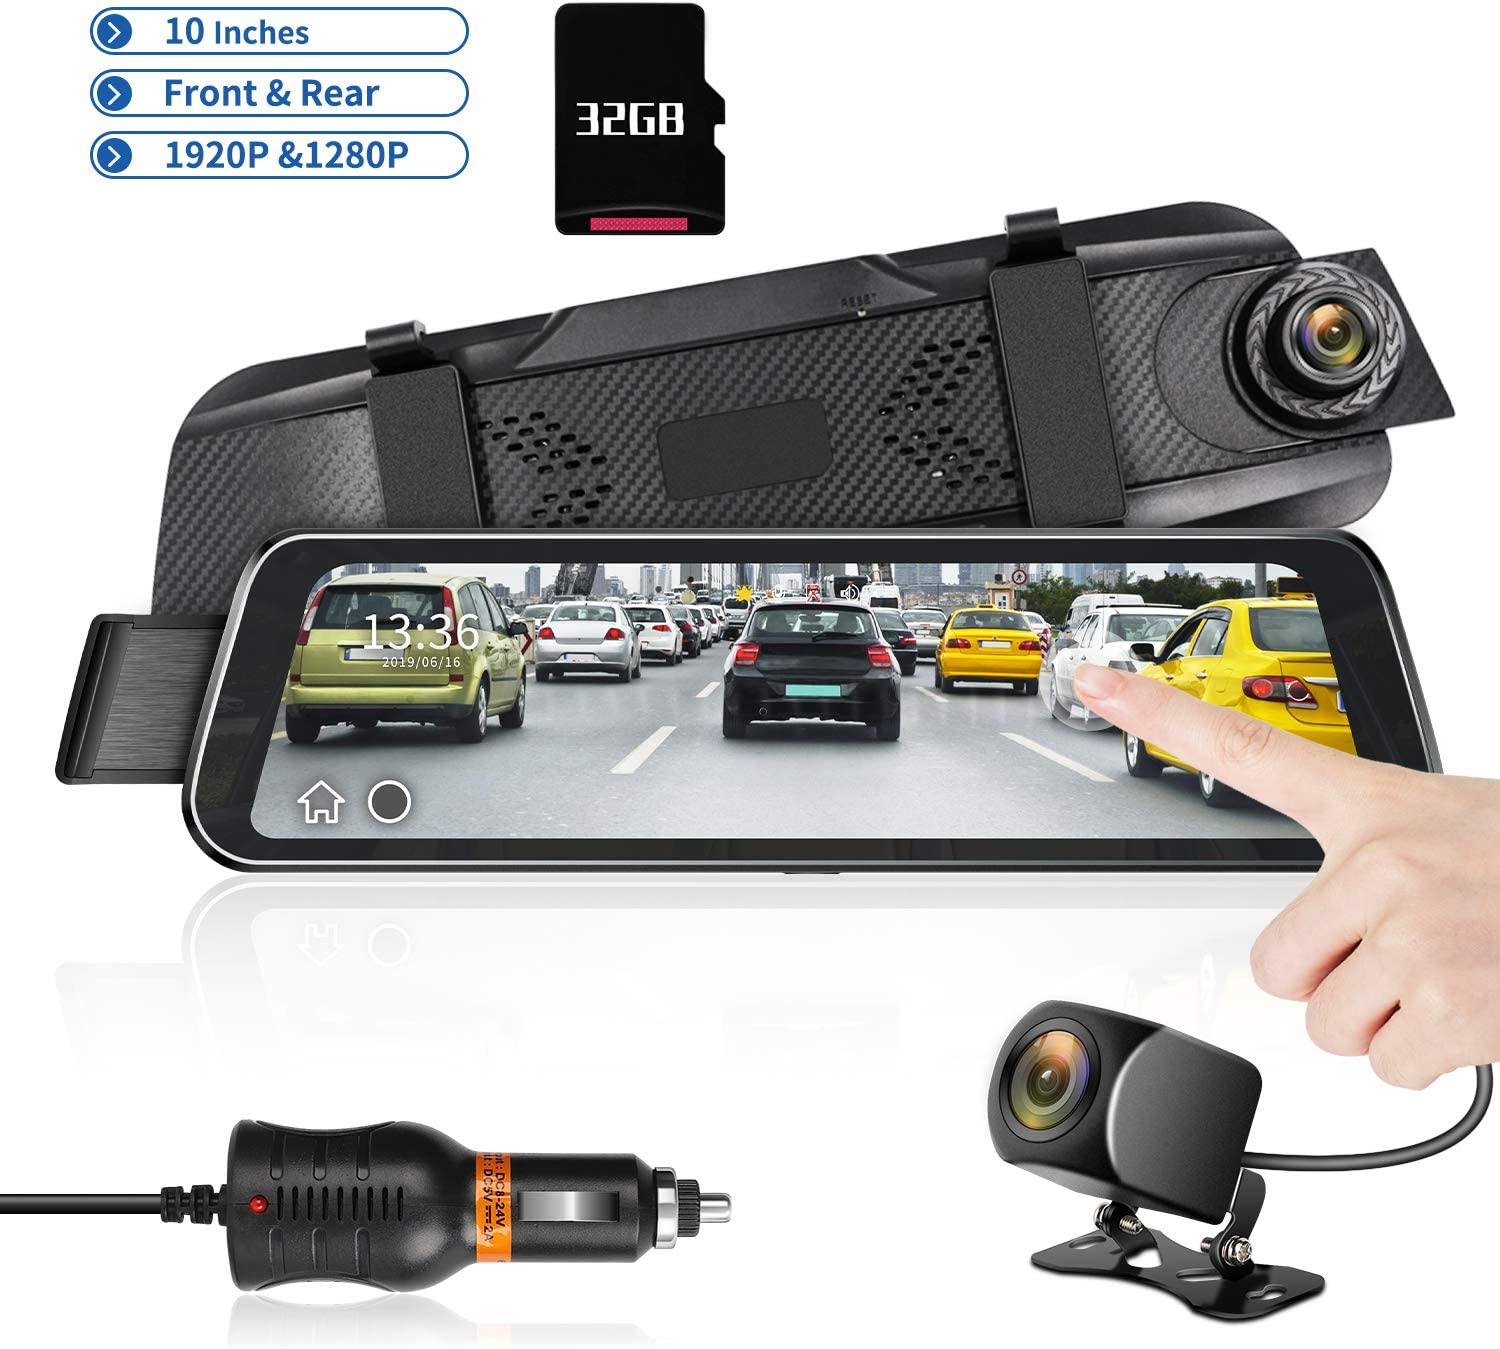 "Mirror Dash Cam 9.66"" HD Backup Camera, Dash Cam Front and Rear Dual Lens 1920P+1280P Full Touch Screen Video Streaming Rear View Mirror Camera with Waterproof, 32G TF Card Included"